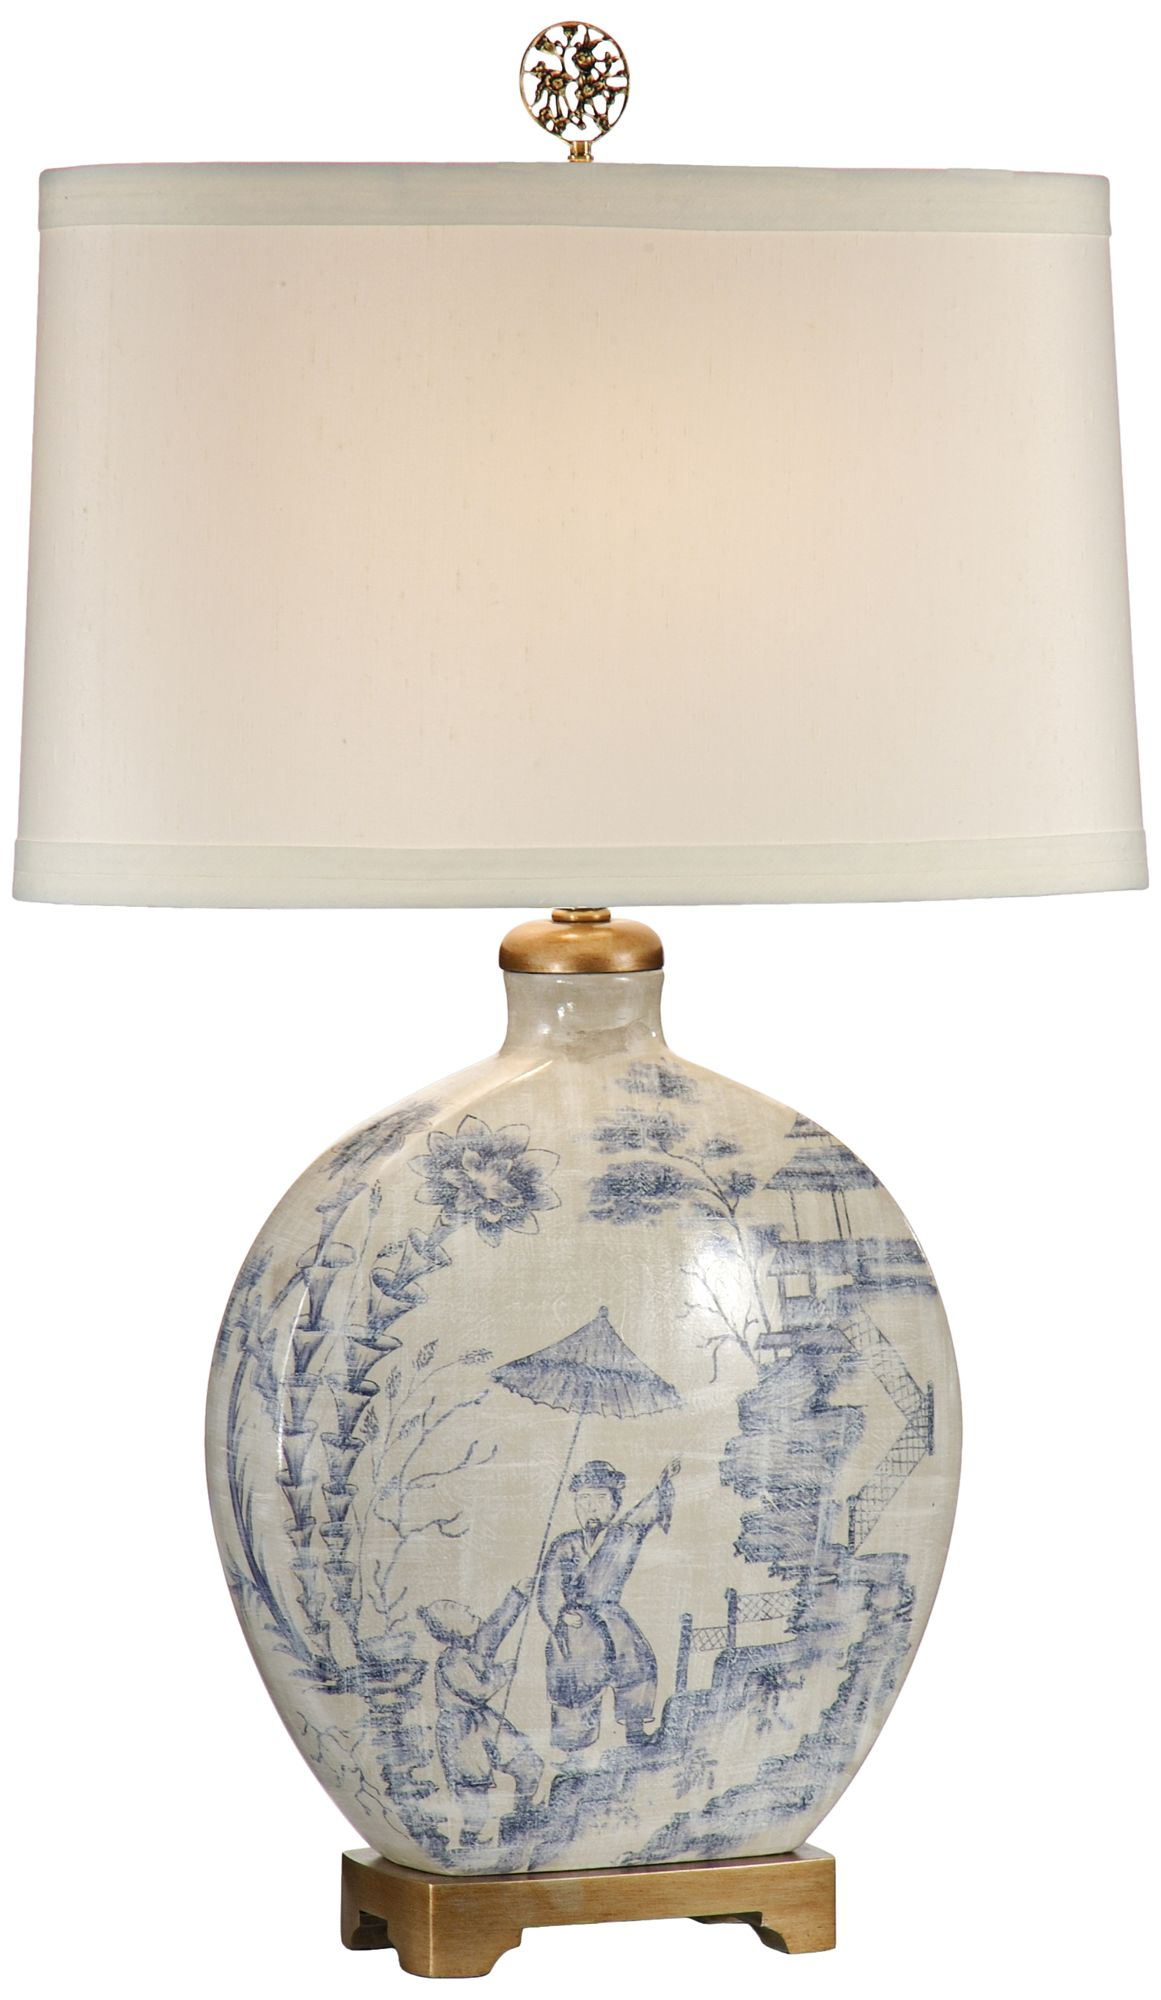 Wildwood Ancient Snuff Bottle Porcelain Table Lamp